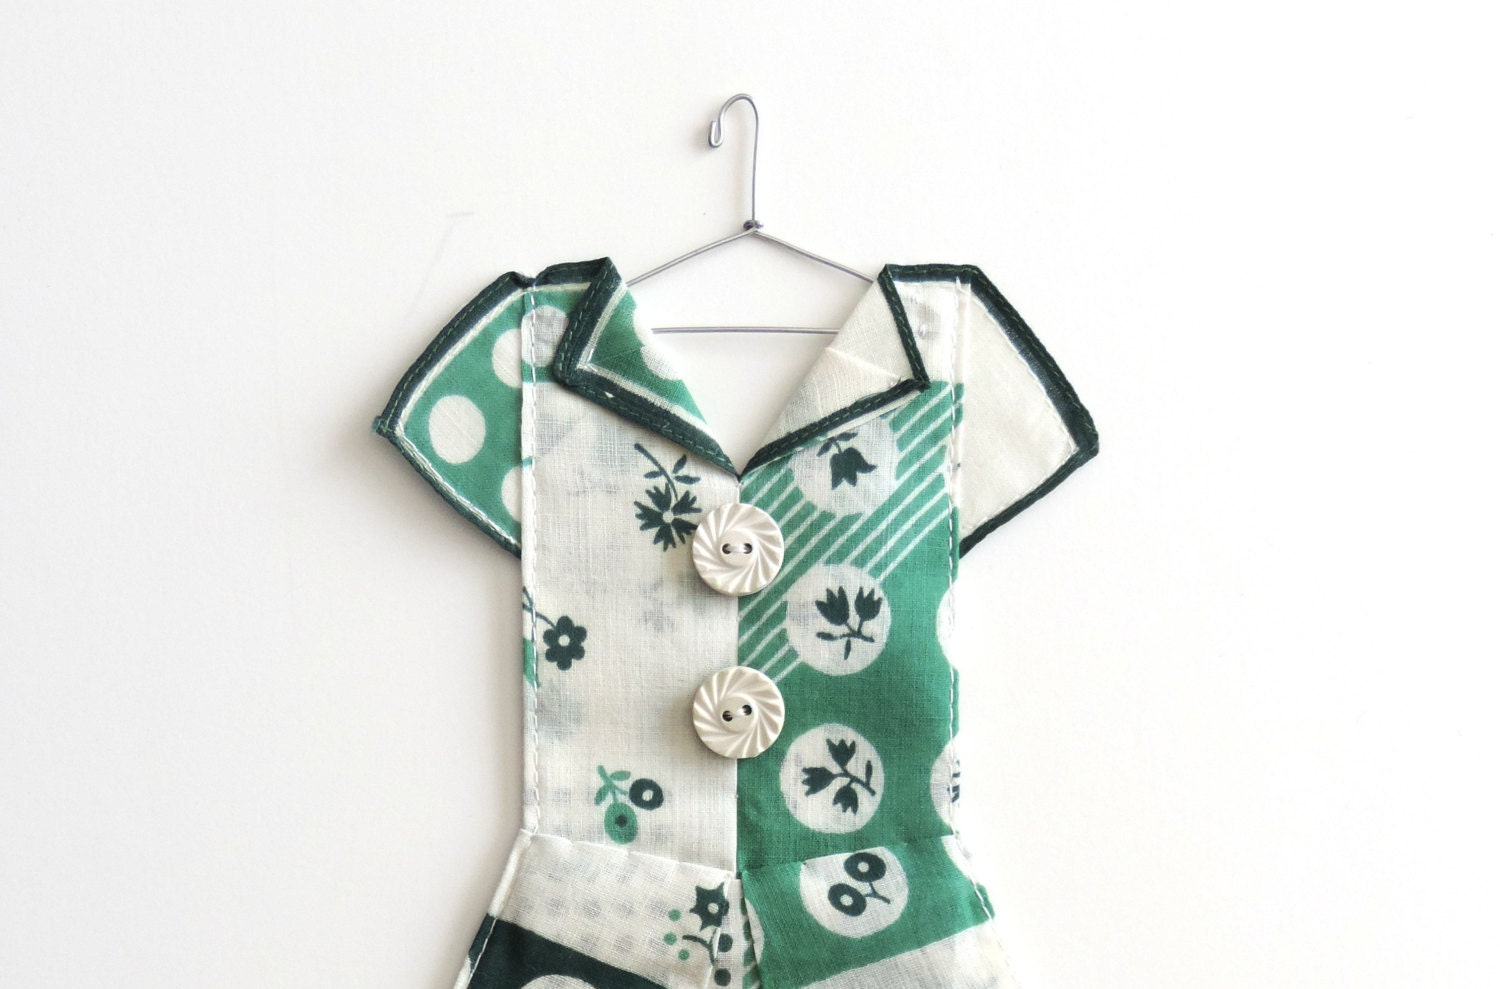 Green and White Geometric Hanky Dress - HankyDresses